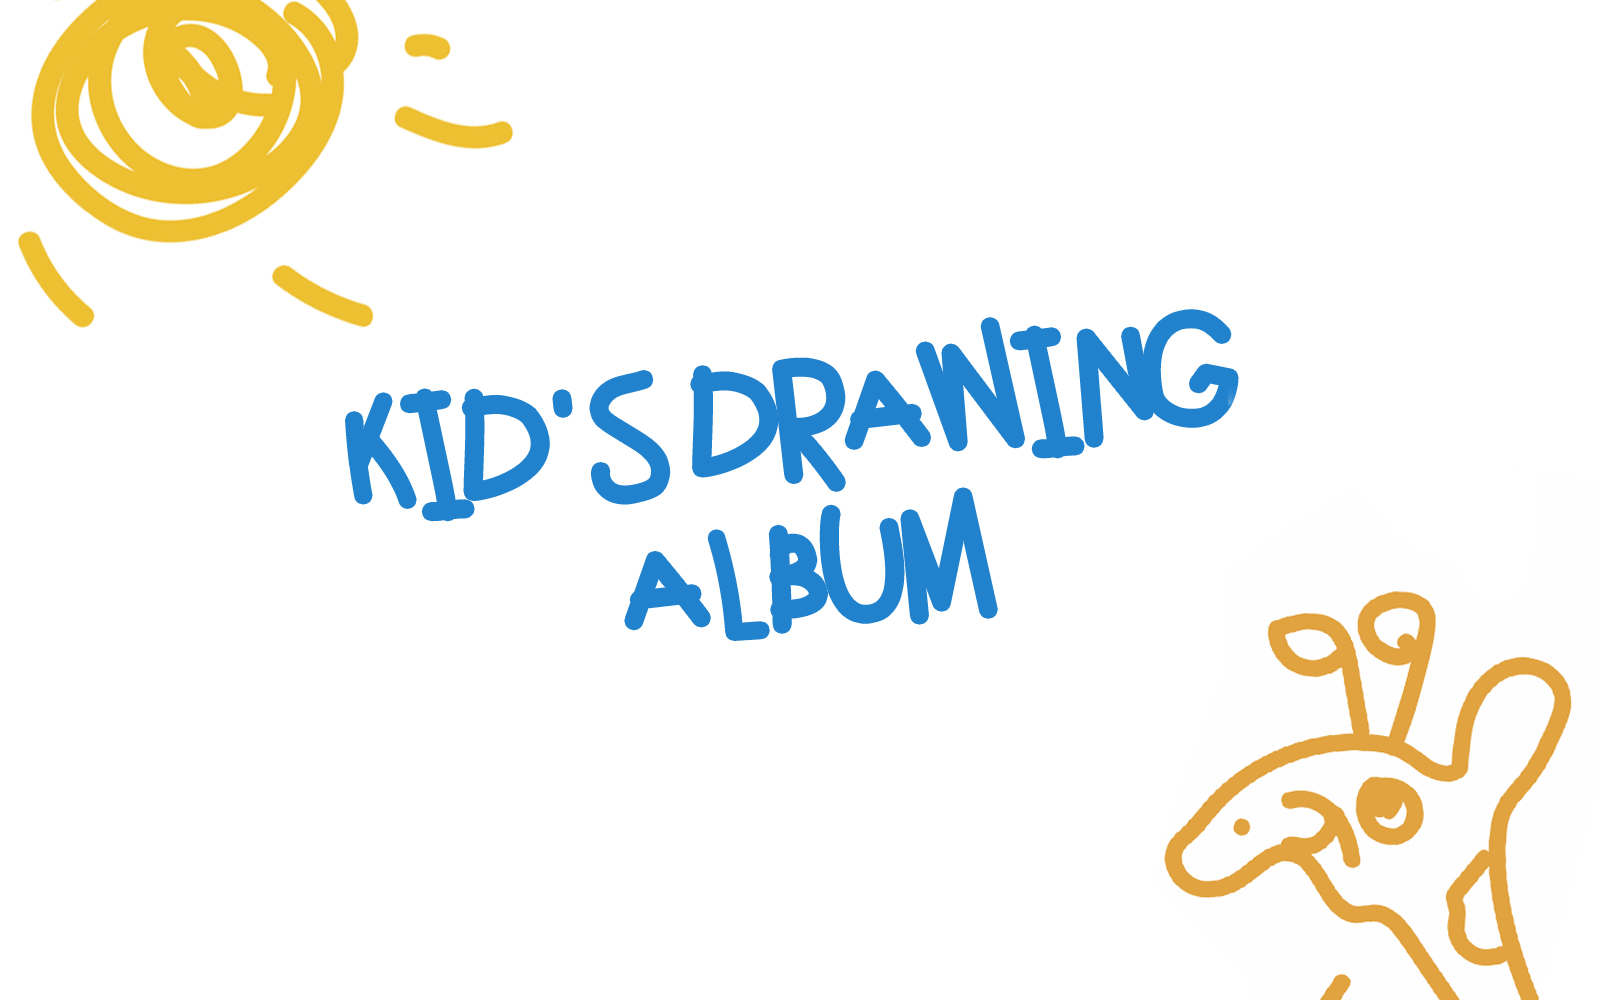 Kids drawing album